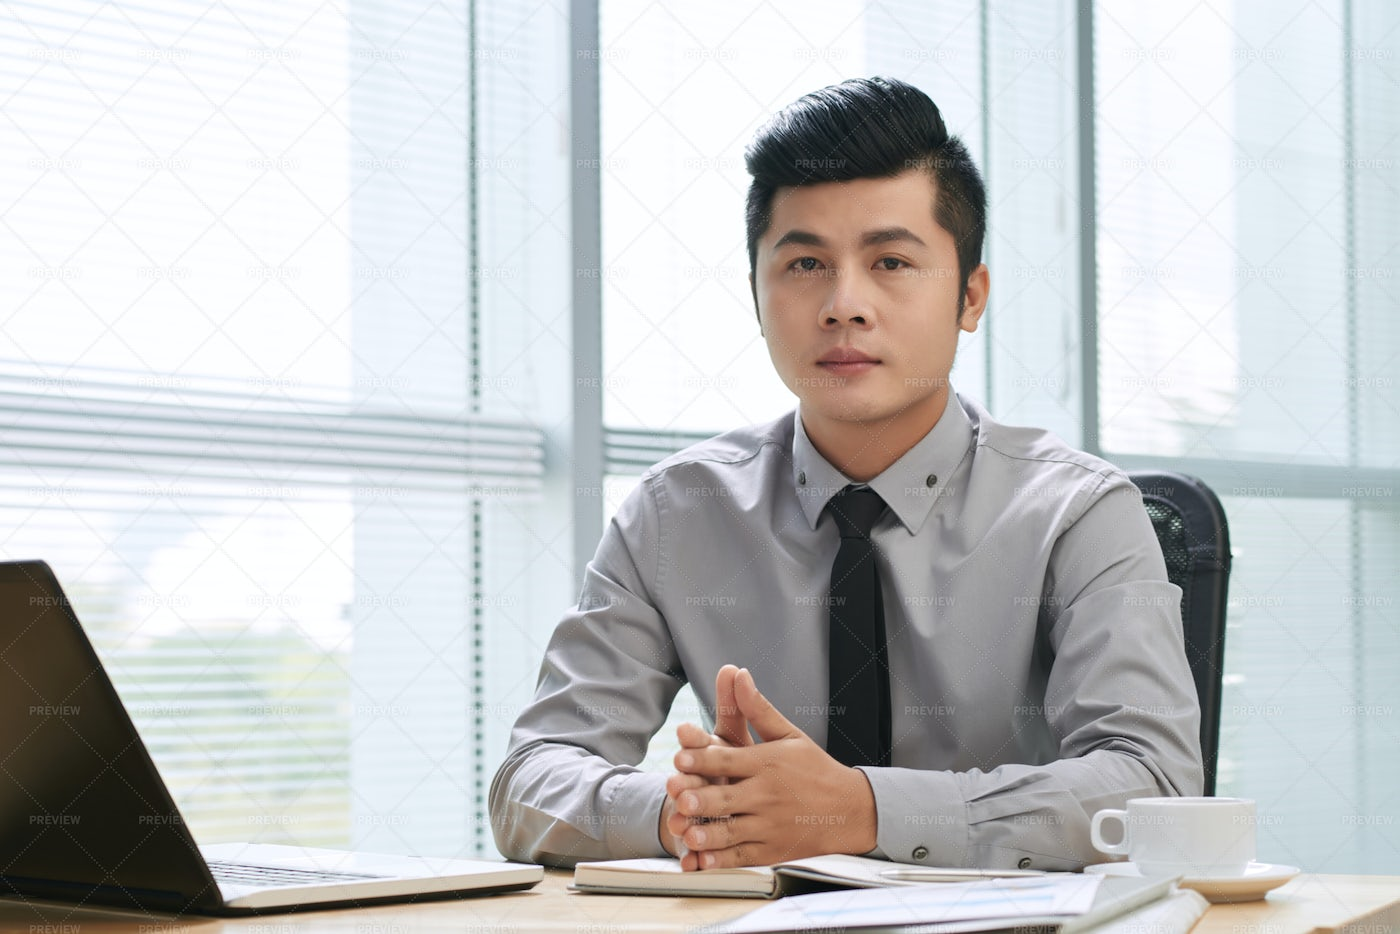 Handsome Businessman Looking At...: Stock Photos